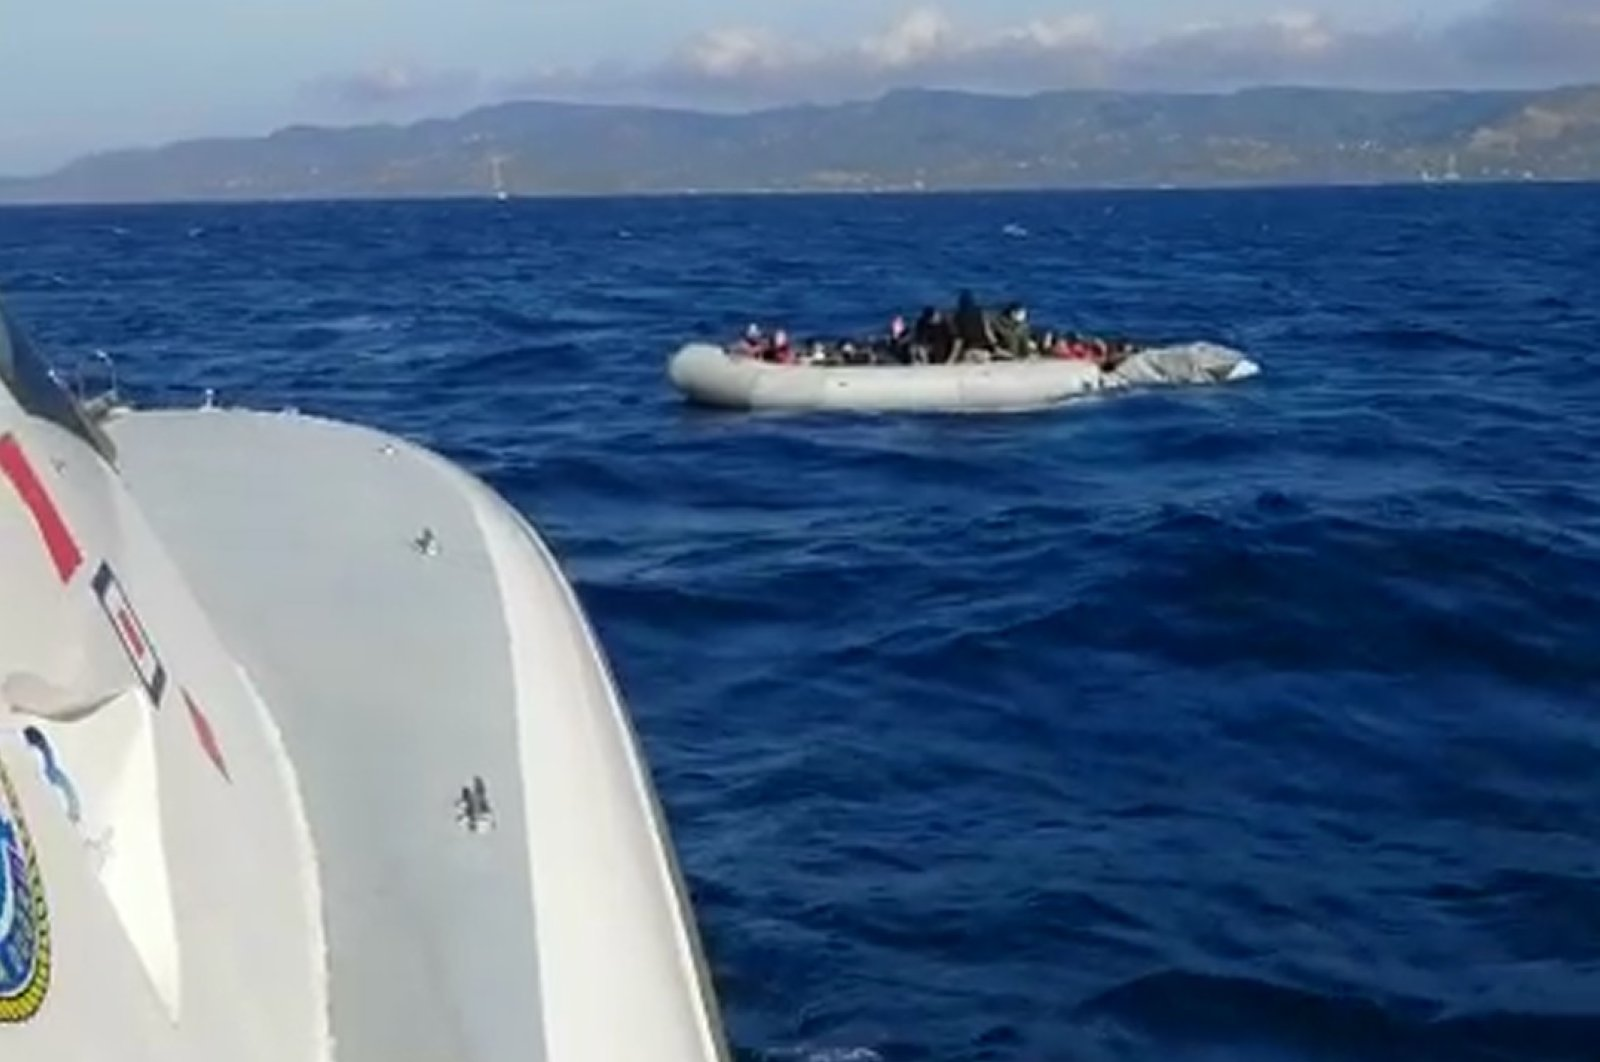 The Turkish Coast Guard arrives to rescue a boat of migrants and refugees off the Aegean Sea coast of Çanakkale's Ayvacık district, June 6, 2020. (DHA Photo)